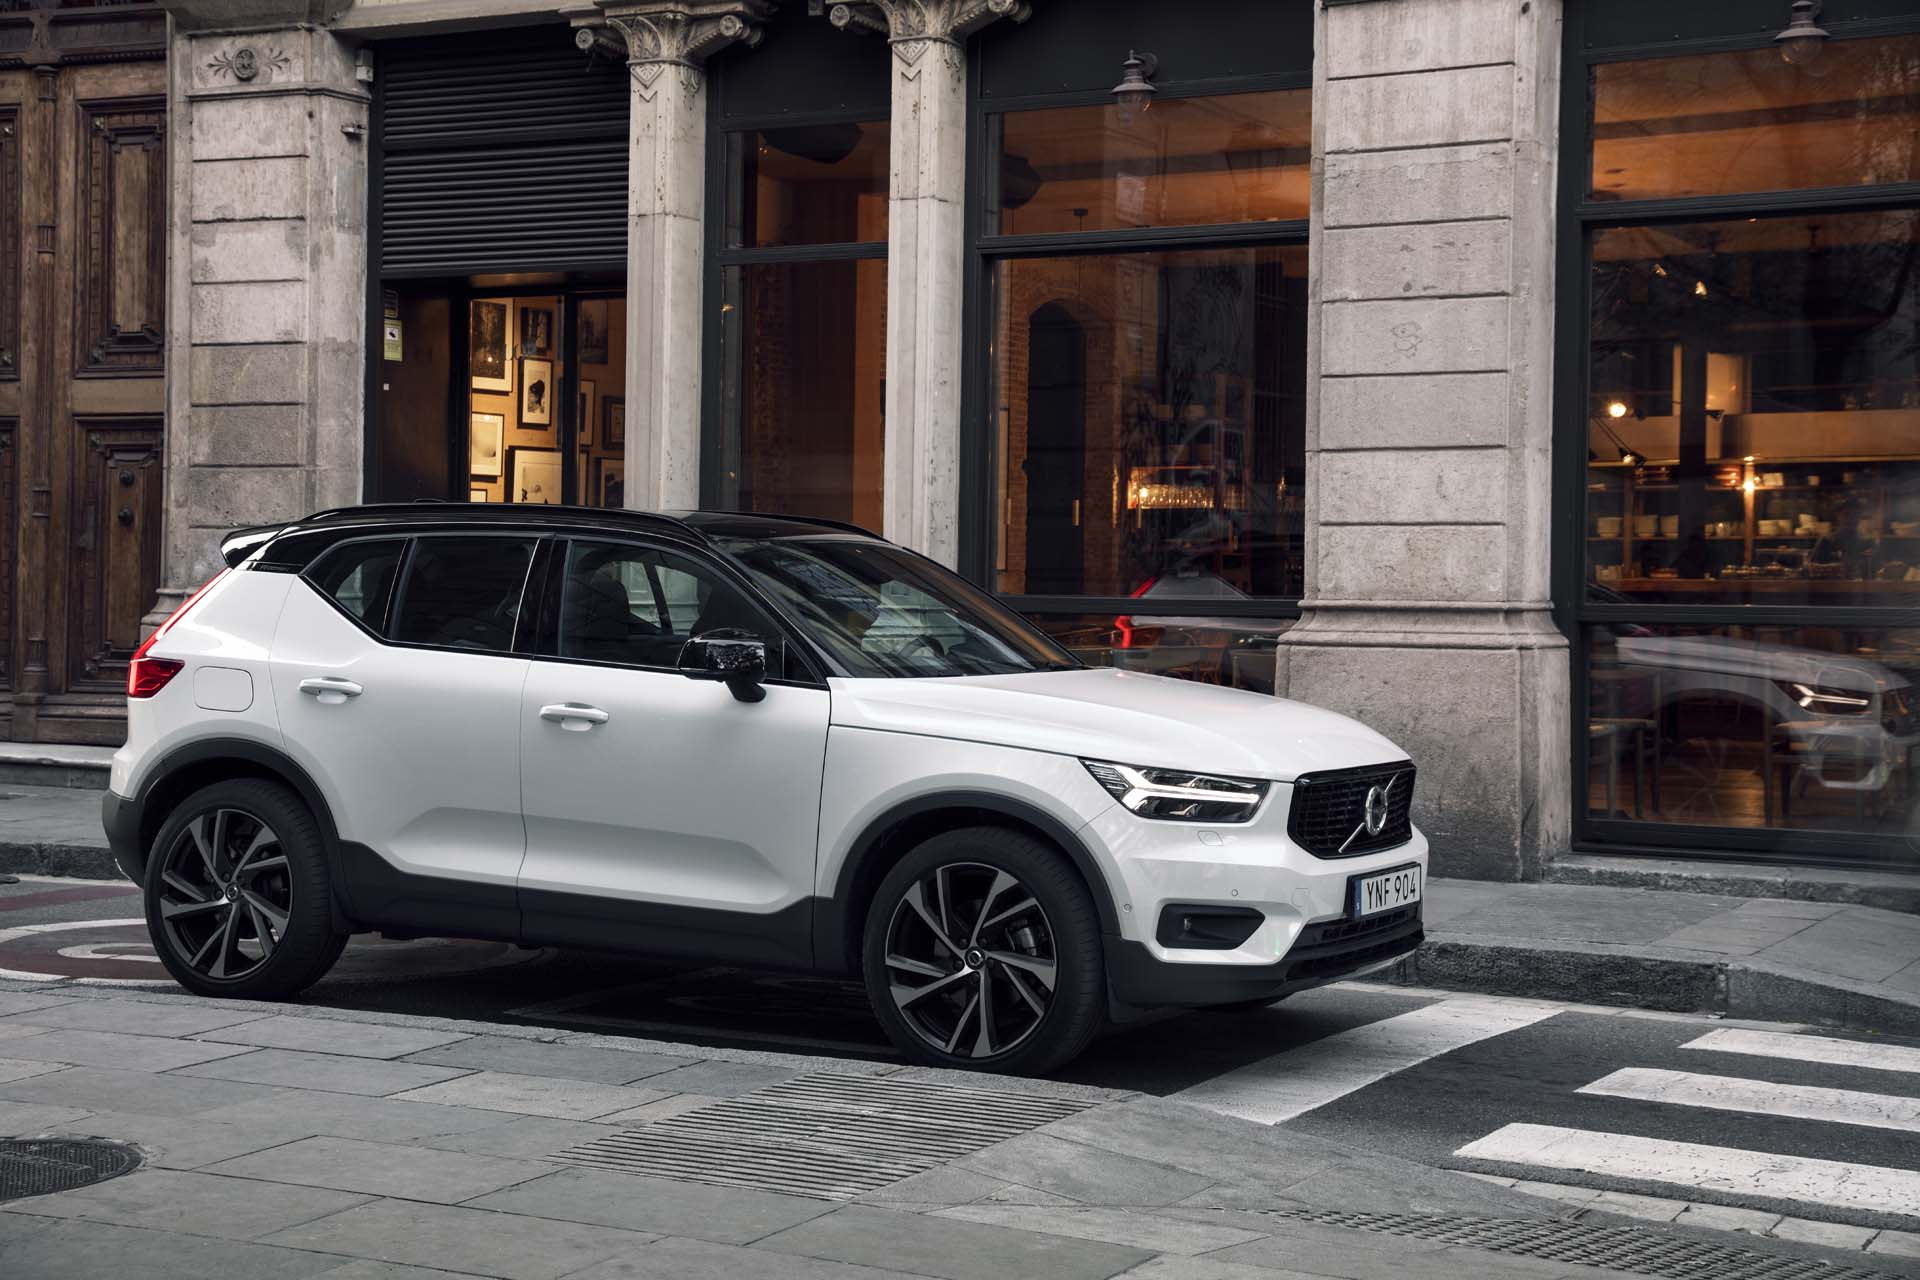 Fastest Car In The World 2020 >> 2019 Volvo XC40 first drive review: fountains of hope, and crossover SUV potential